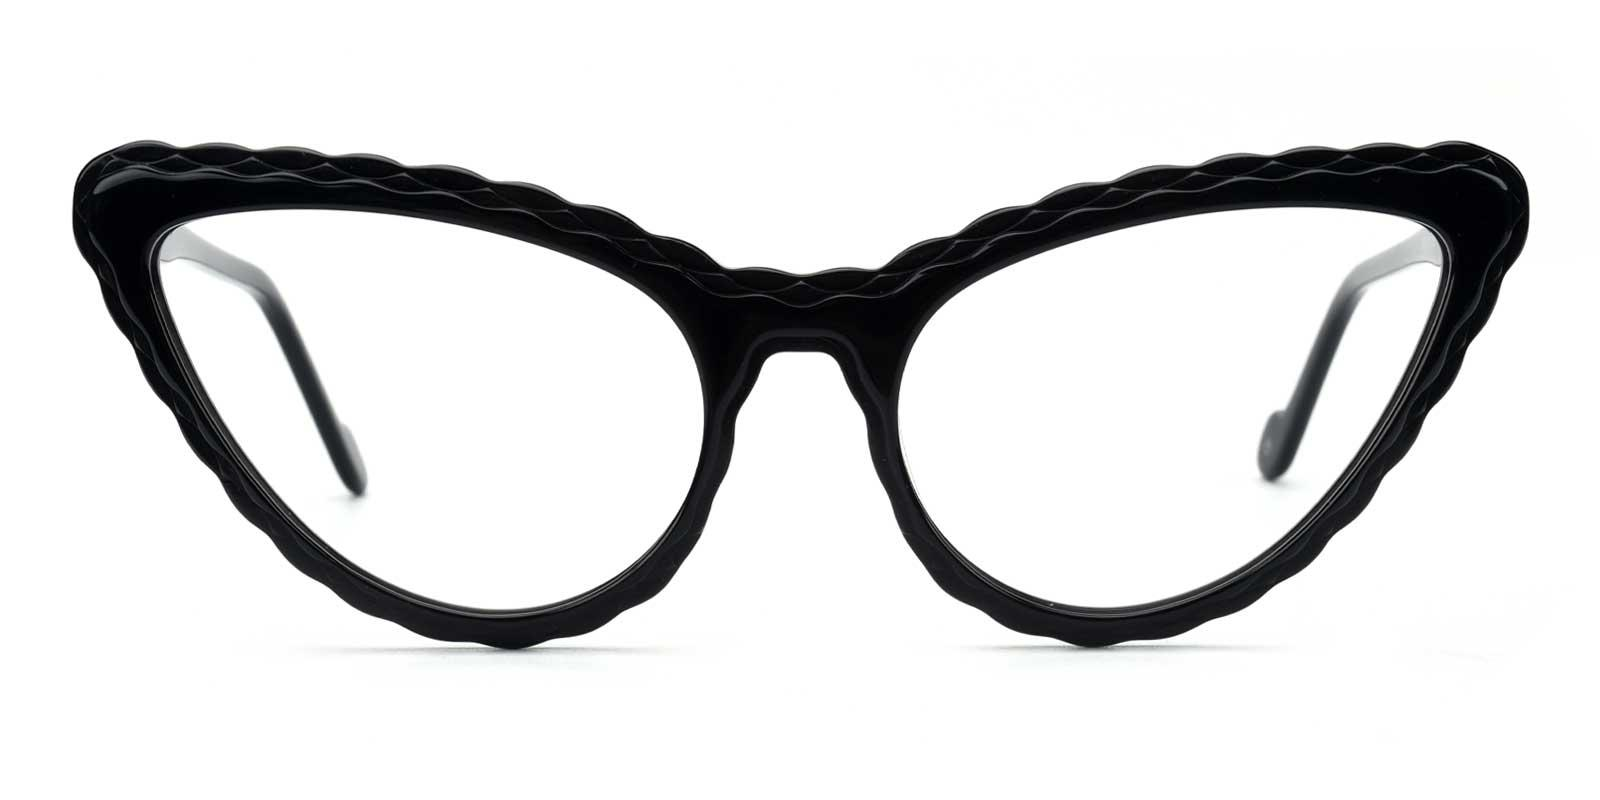 Barry-Black-Cat-Acetate-Eyeglasses-additional2